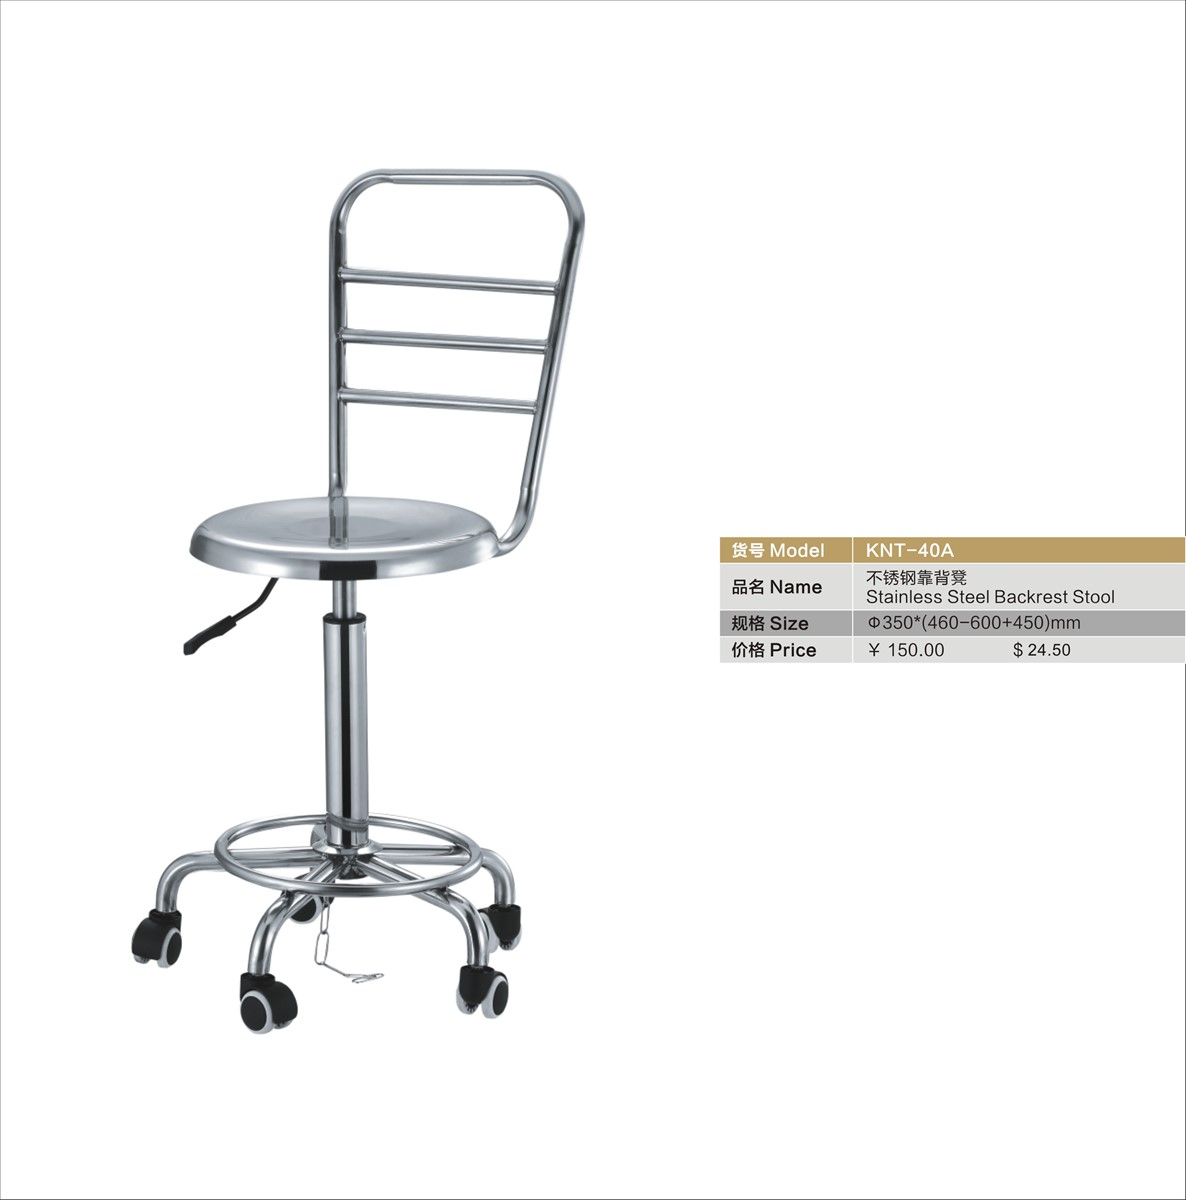 Stainless Steel Backrest Stool Purchasing Souring Agent